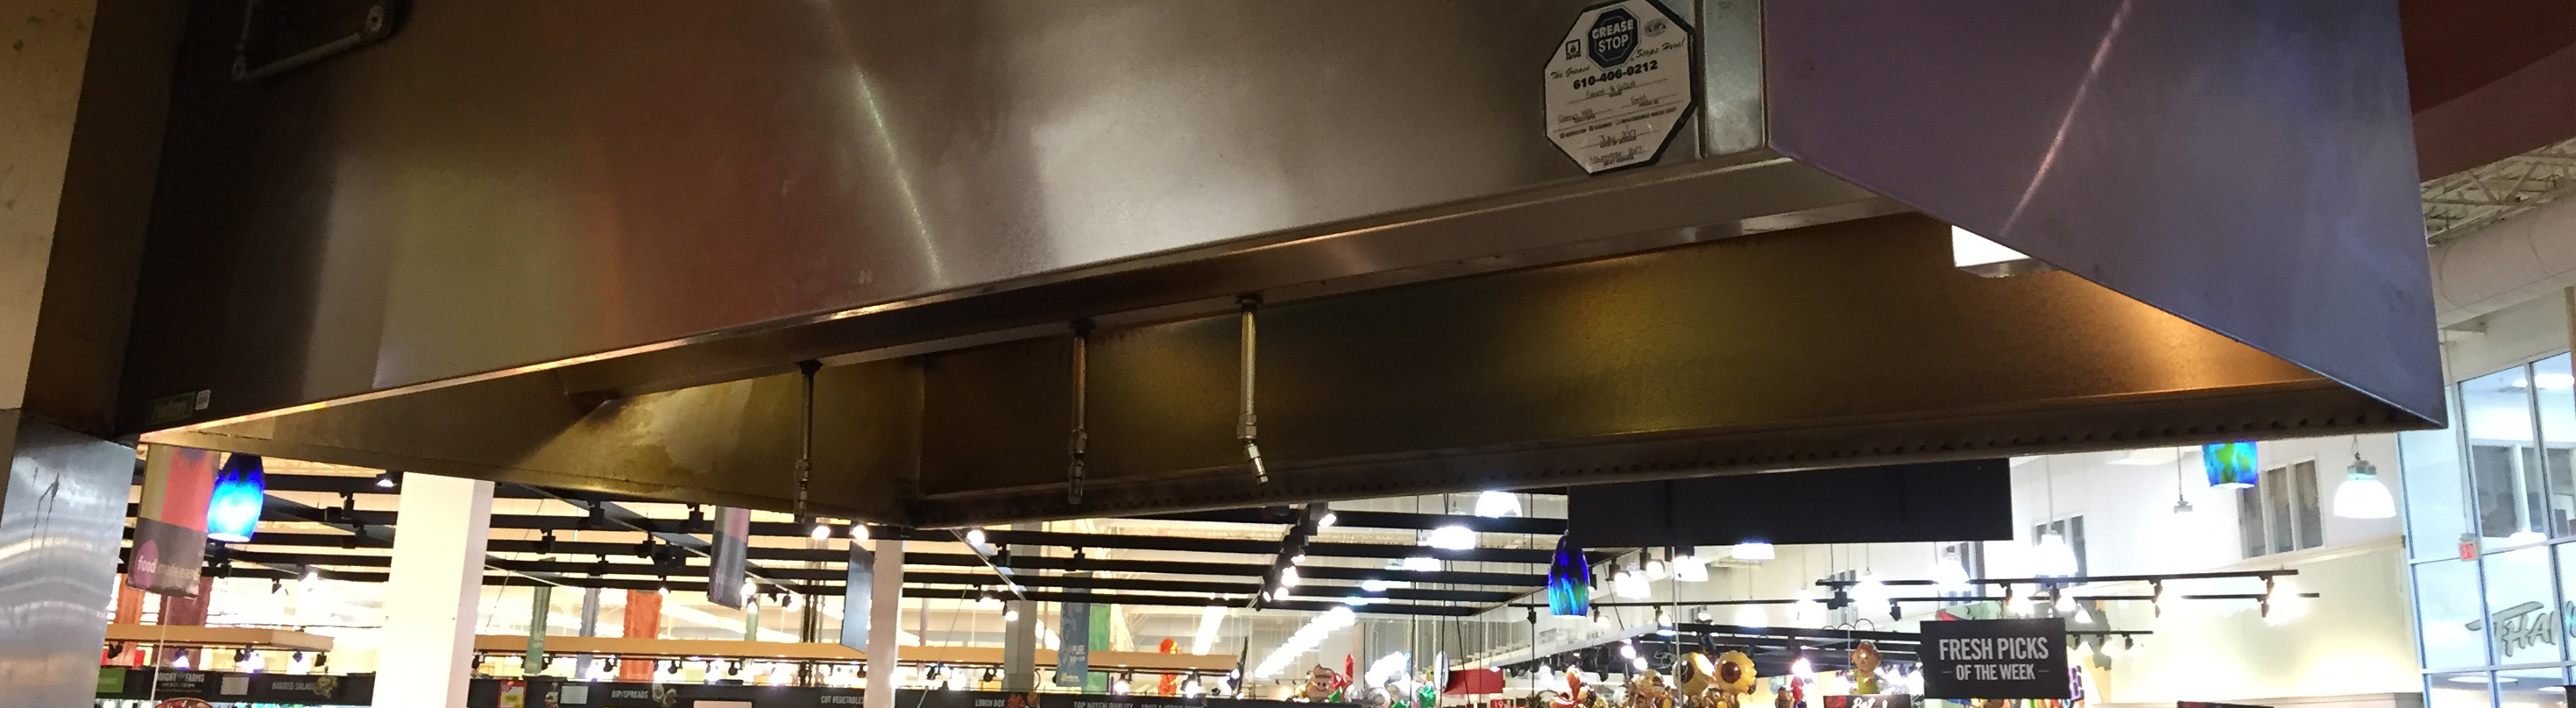 Giant Food Stores - Remodel Due Diligence Report